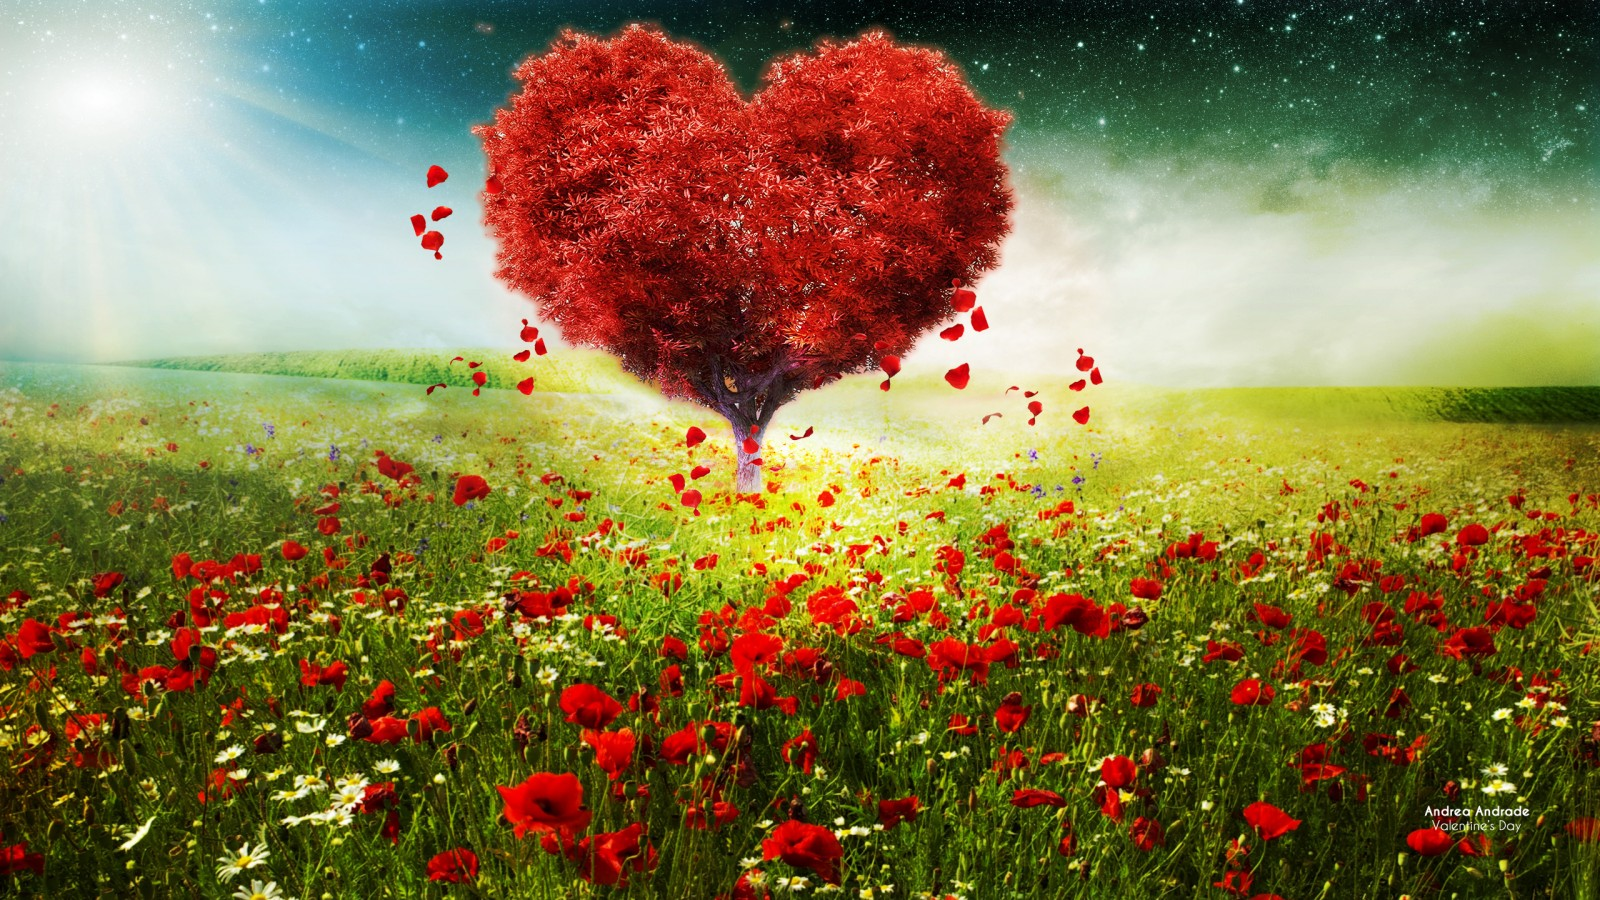 Kiss Day Wallpaper Hd Valentines Day Love Heart Tree Landscape Hd Wallpapers